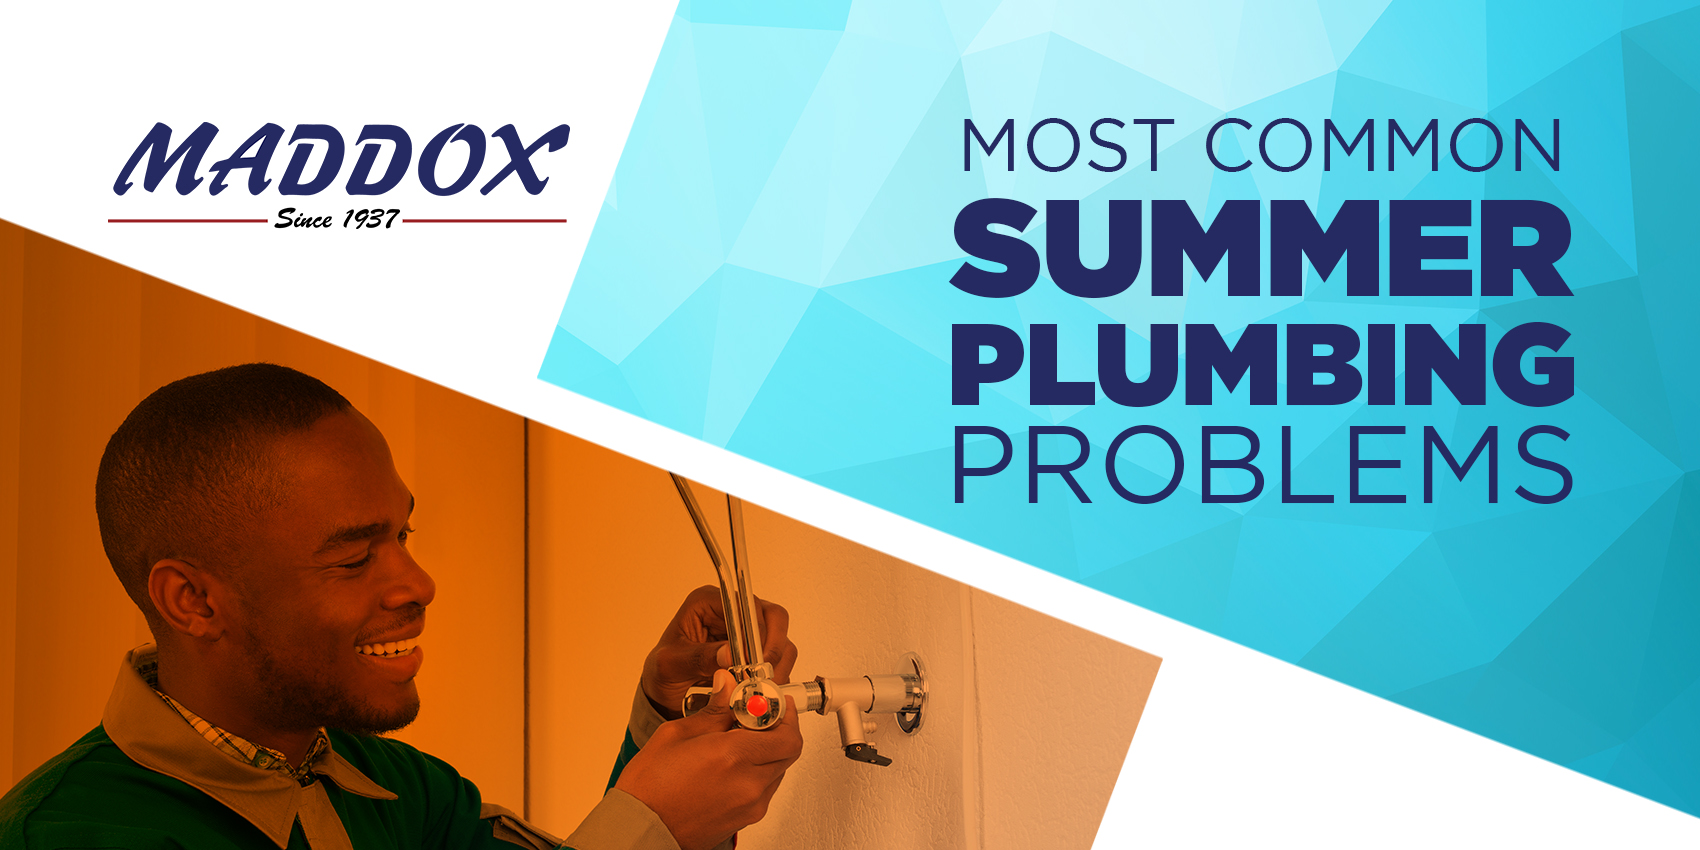 Most Common Summer Plumbing Problems